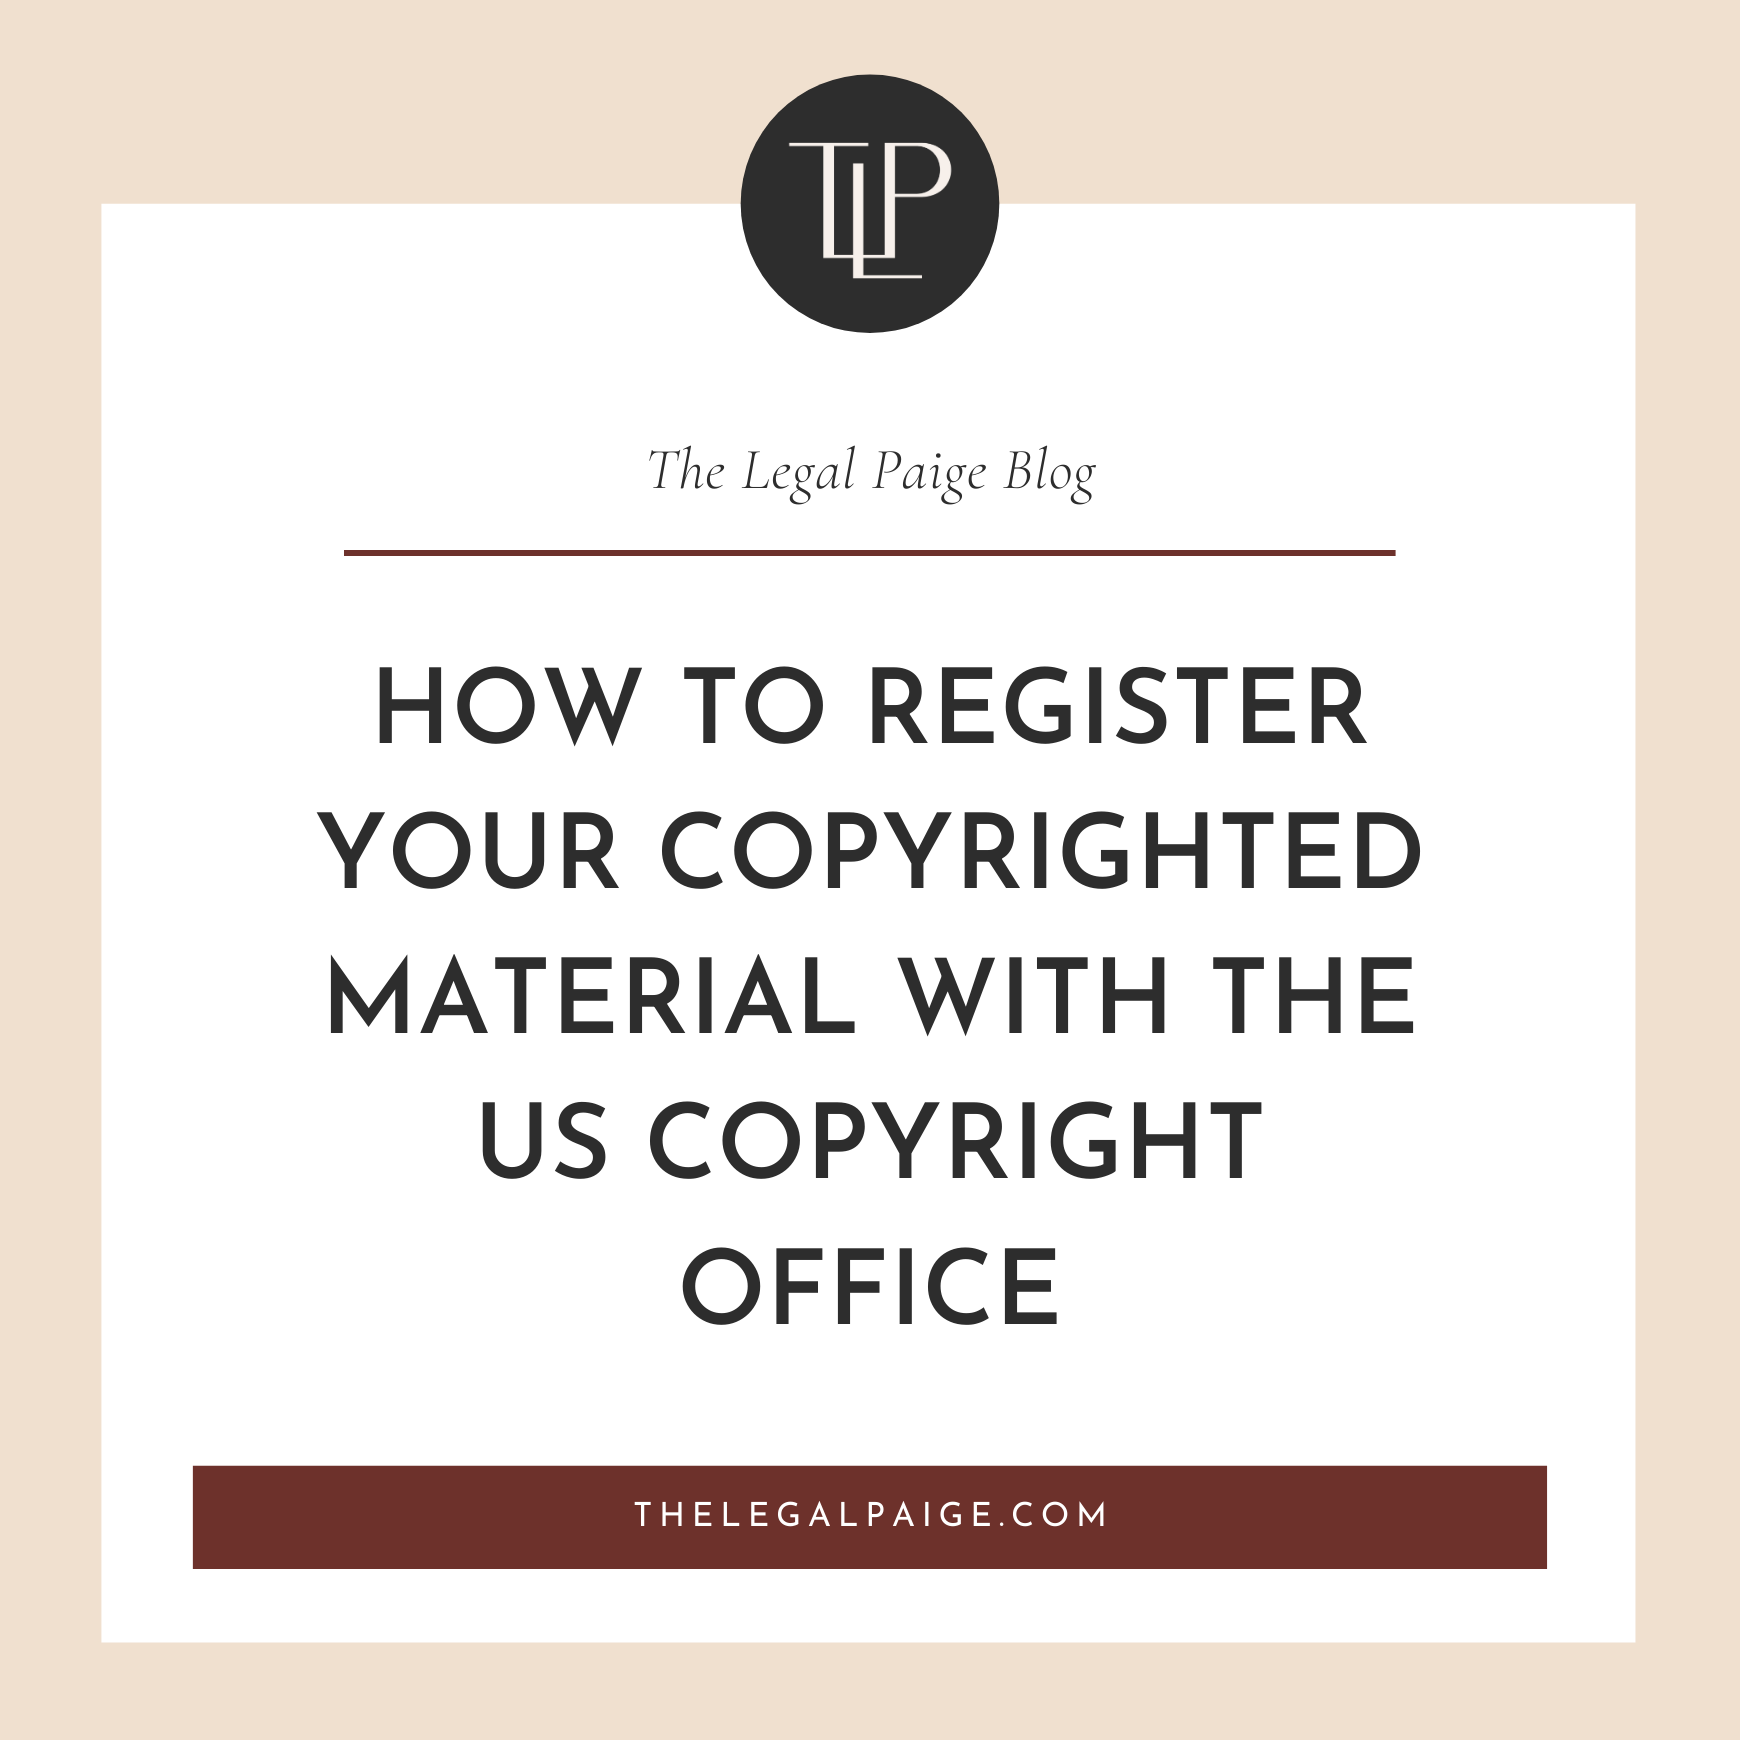 How to Register your Copyrighted Material with the US Copyright Office